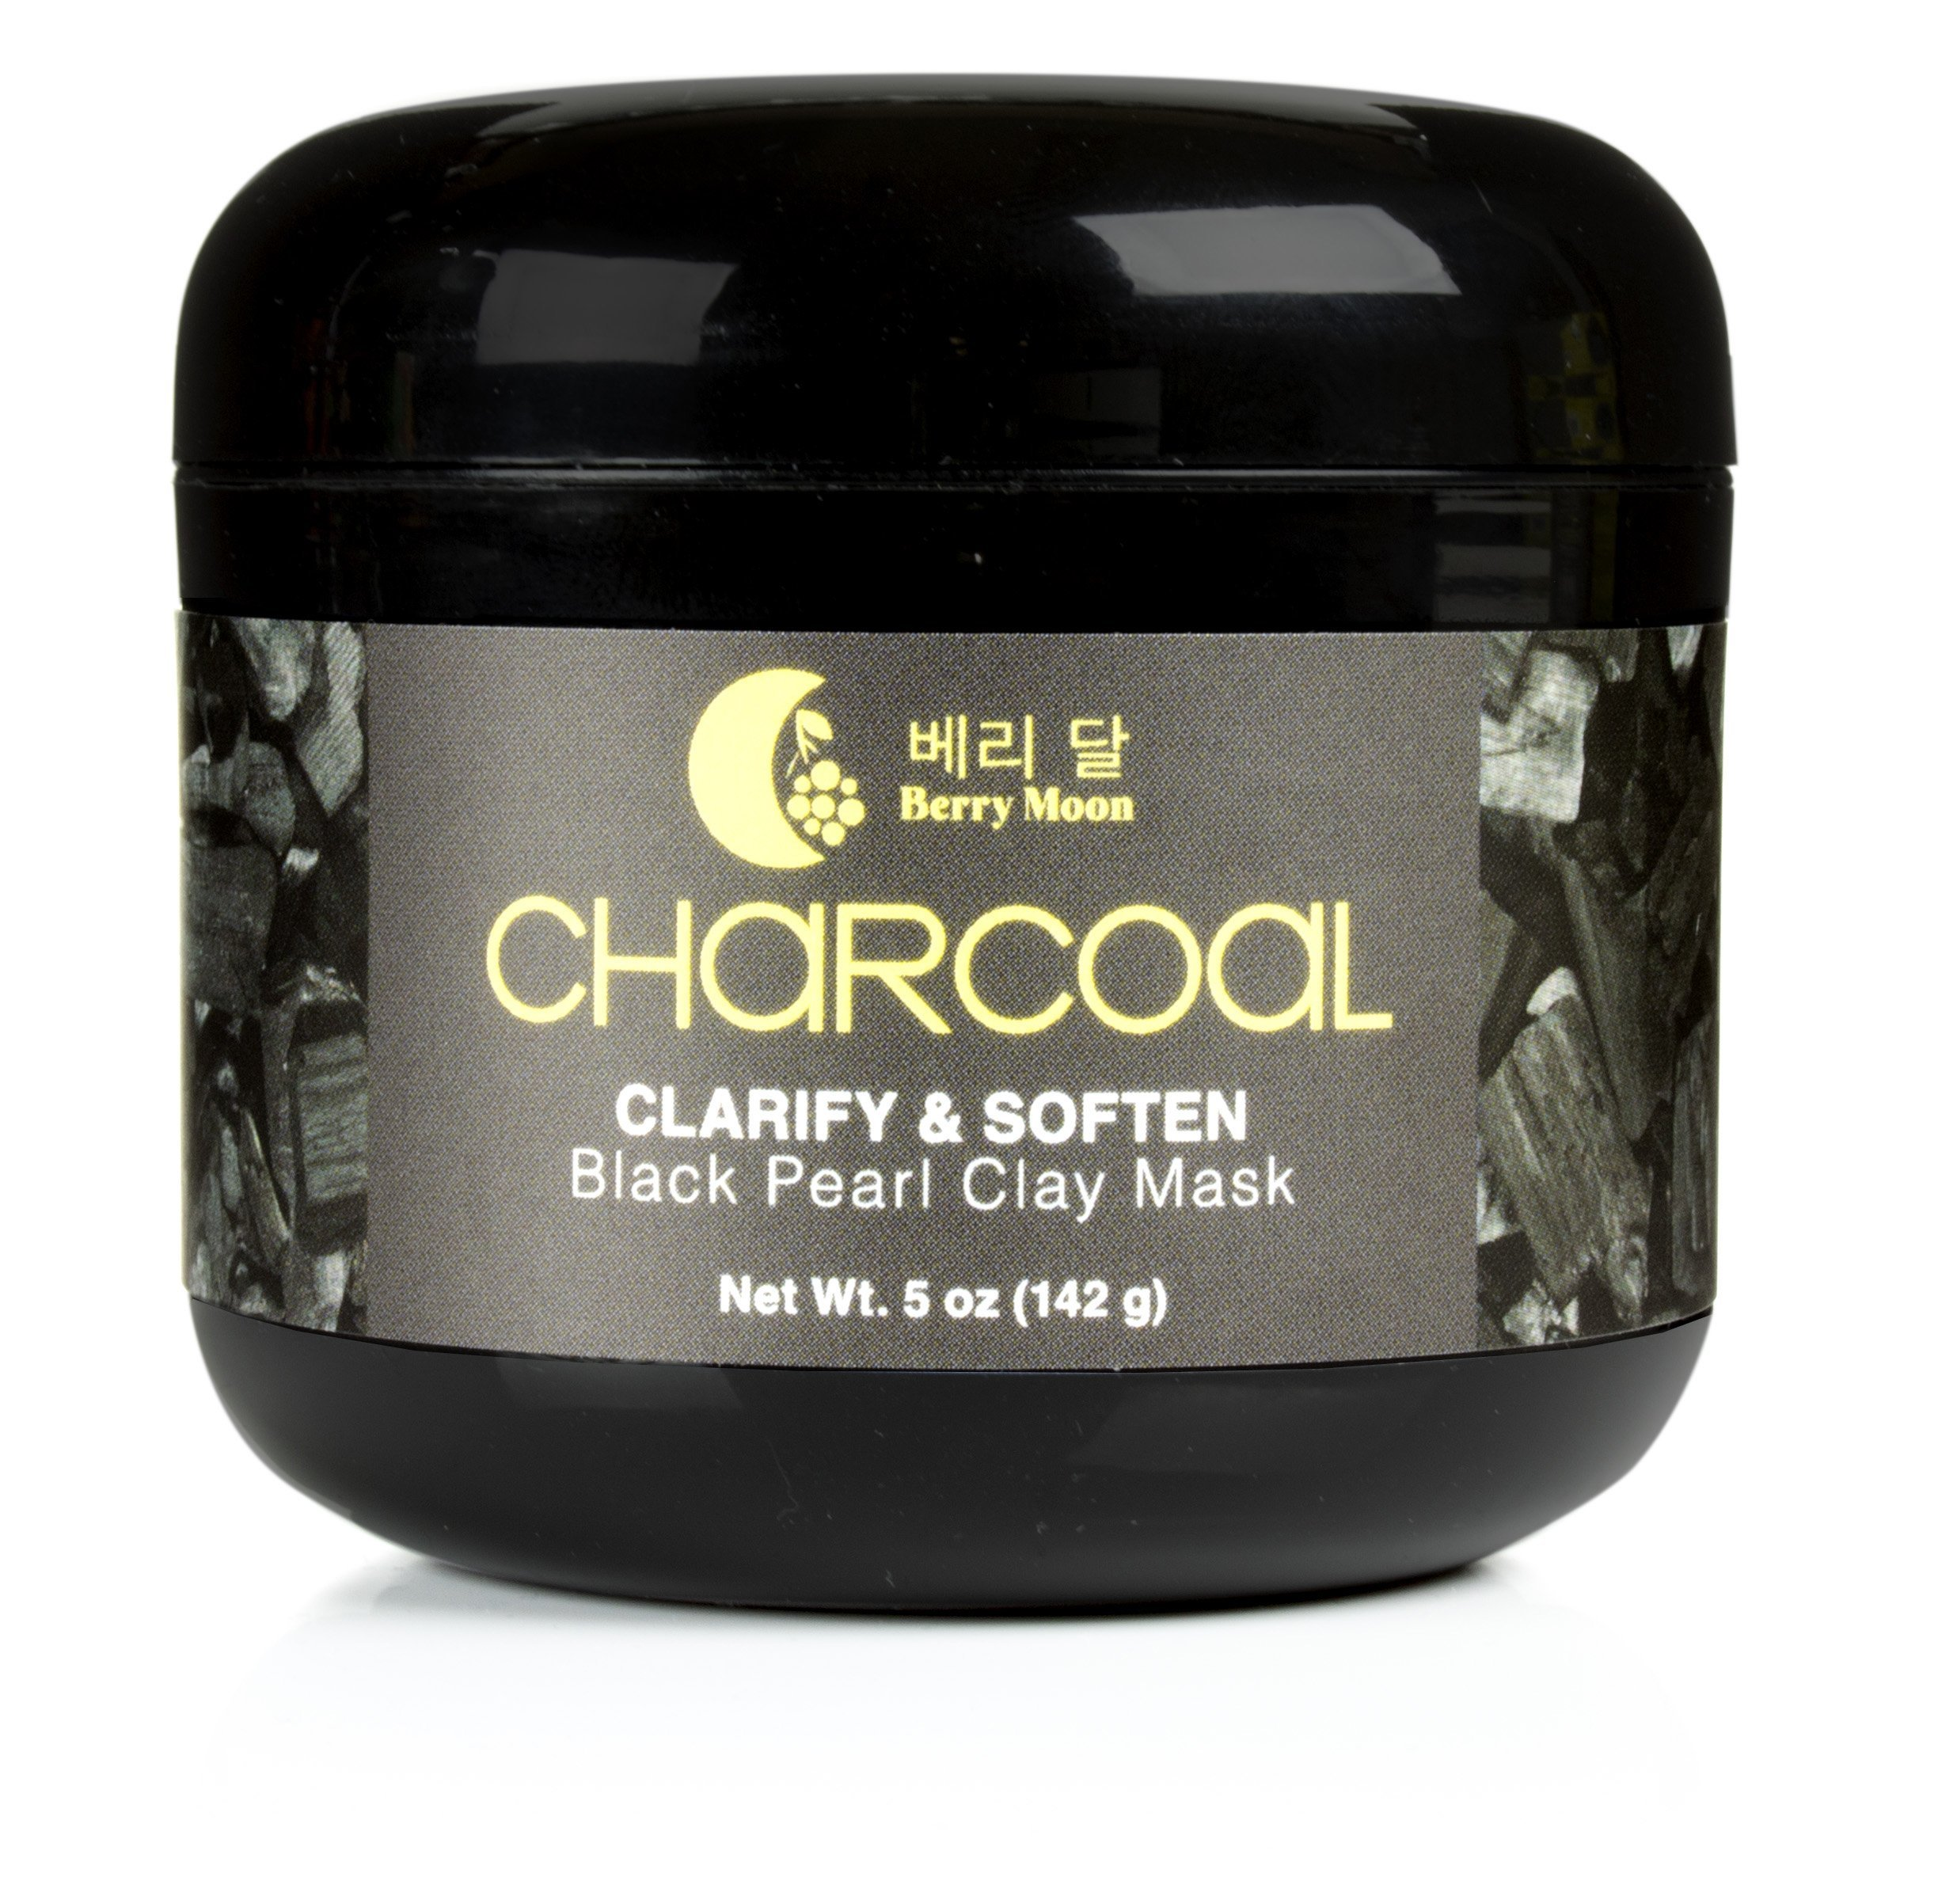 Amazon.com : Berry Moon Anti-aging Vitamin C Clay Mask for